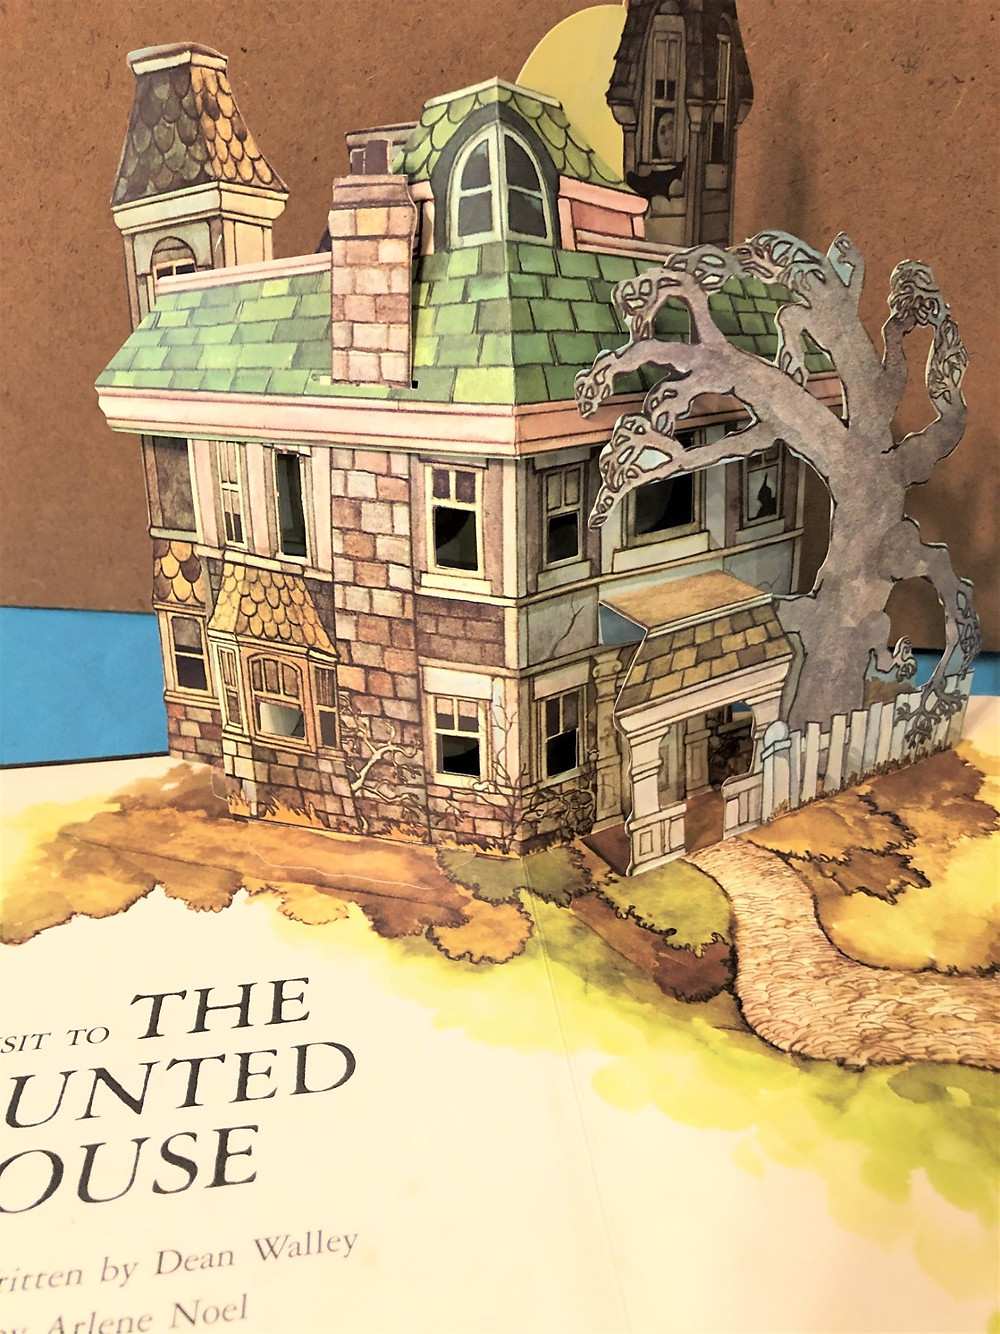 Pop-up book Visit to a Haunted House by Dean Walley and Arlene Noel